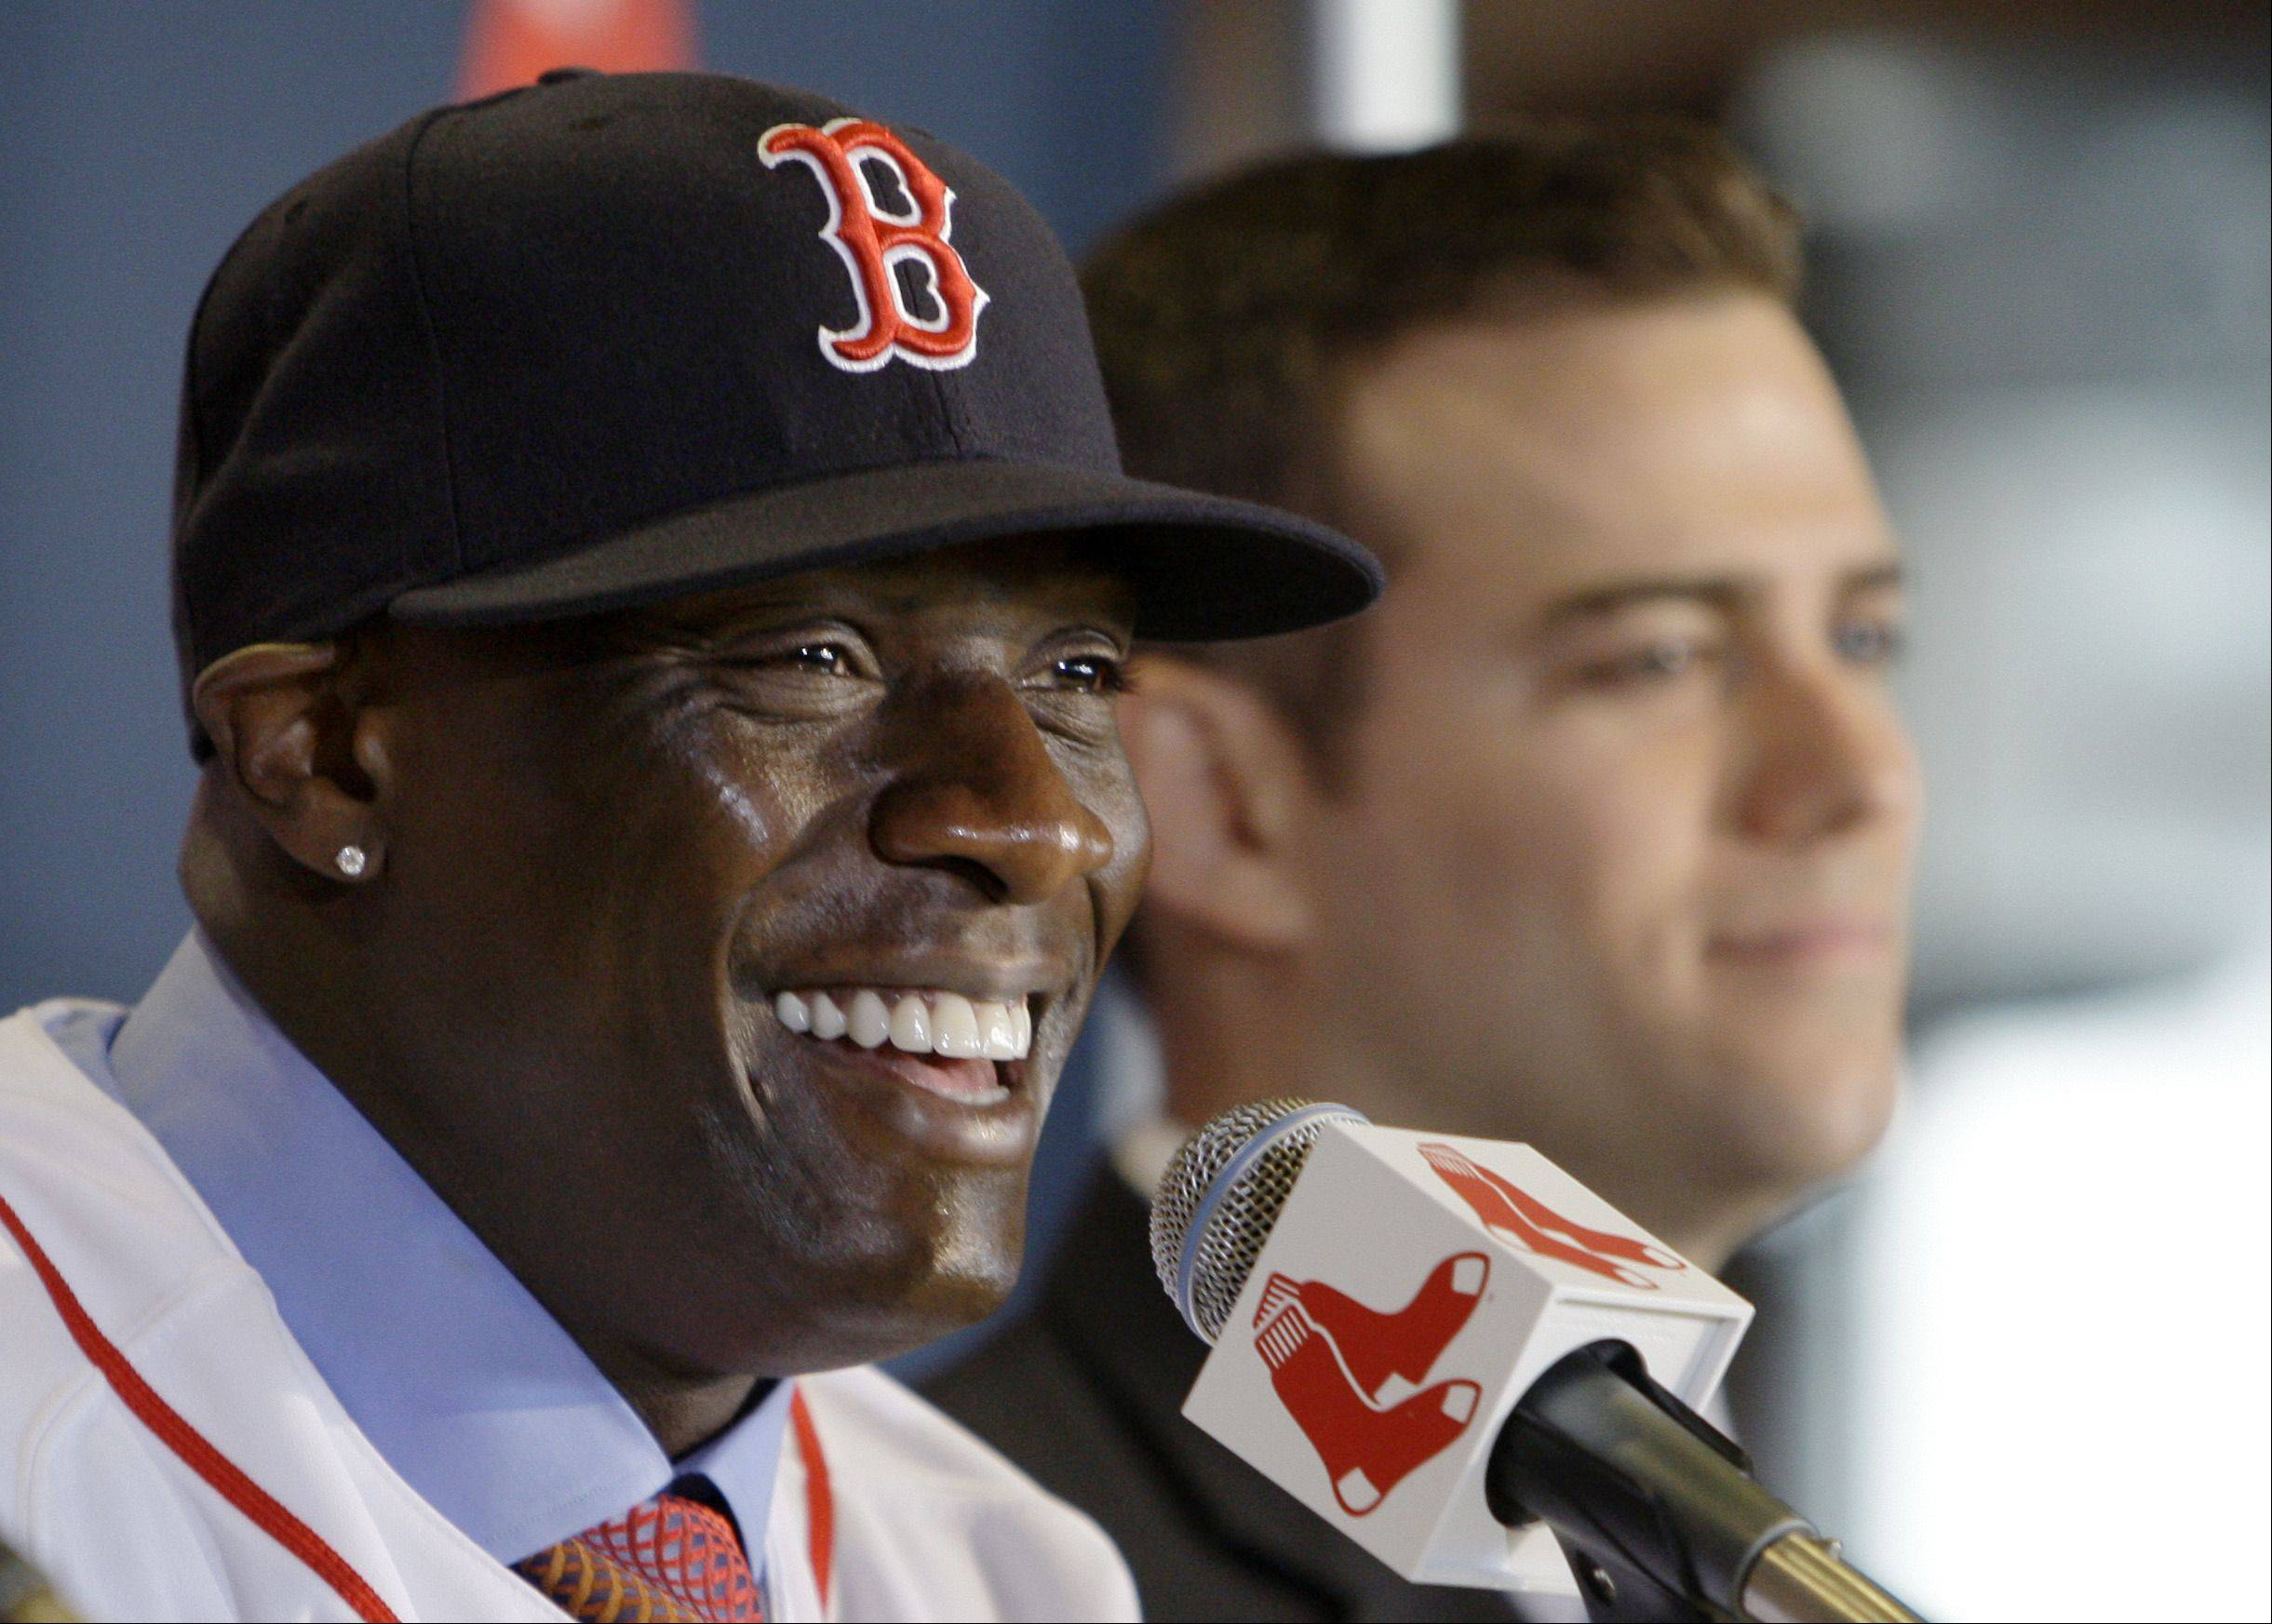 Newly-acquired Boston Red Sox outfielder Mike Cameron, left, smiles as he sits next to Red Sox general manager Theo Epstein during a baseball news conference at Fenway Park in Boston, Wednesday, Dec. 16, 2009. Cameron signed a two-year contract with the Red Sox worth a reported $7 million to $8 million a season.